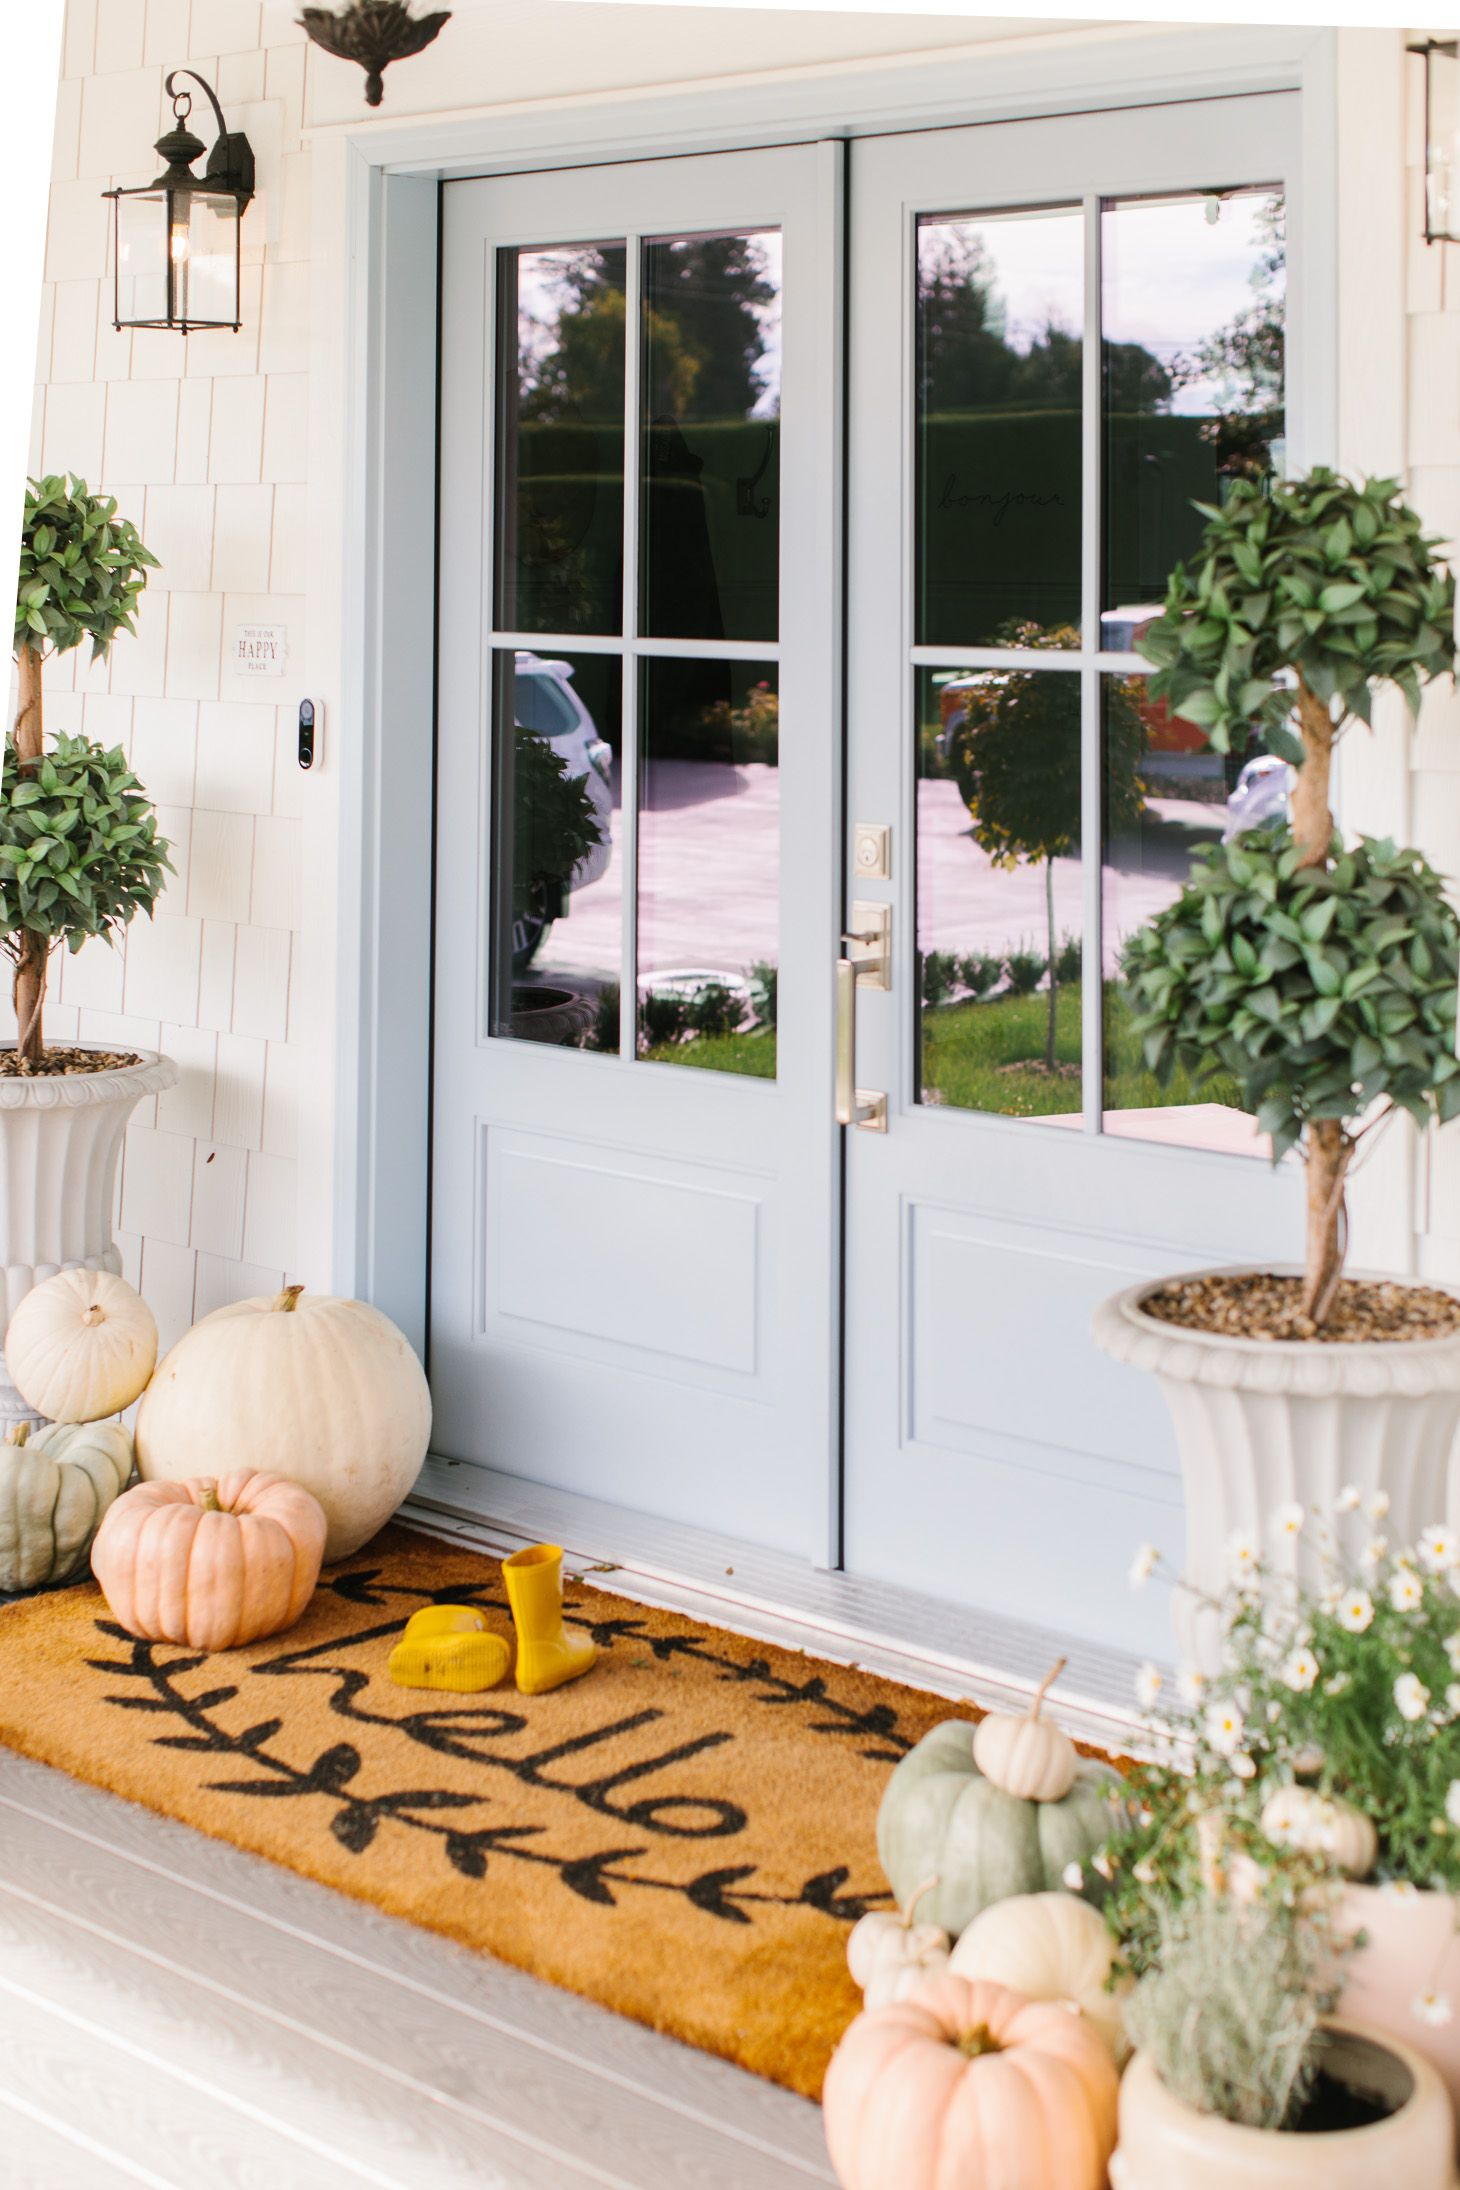 5 Ways to Cozy Up Your Home for Fall